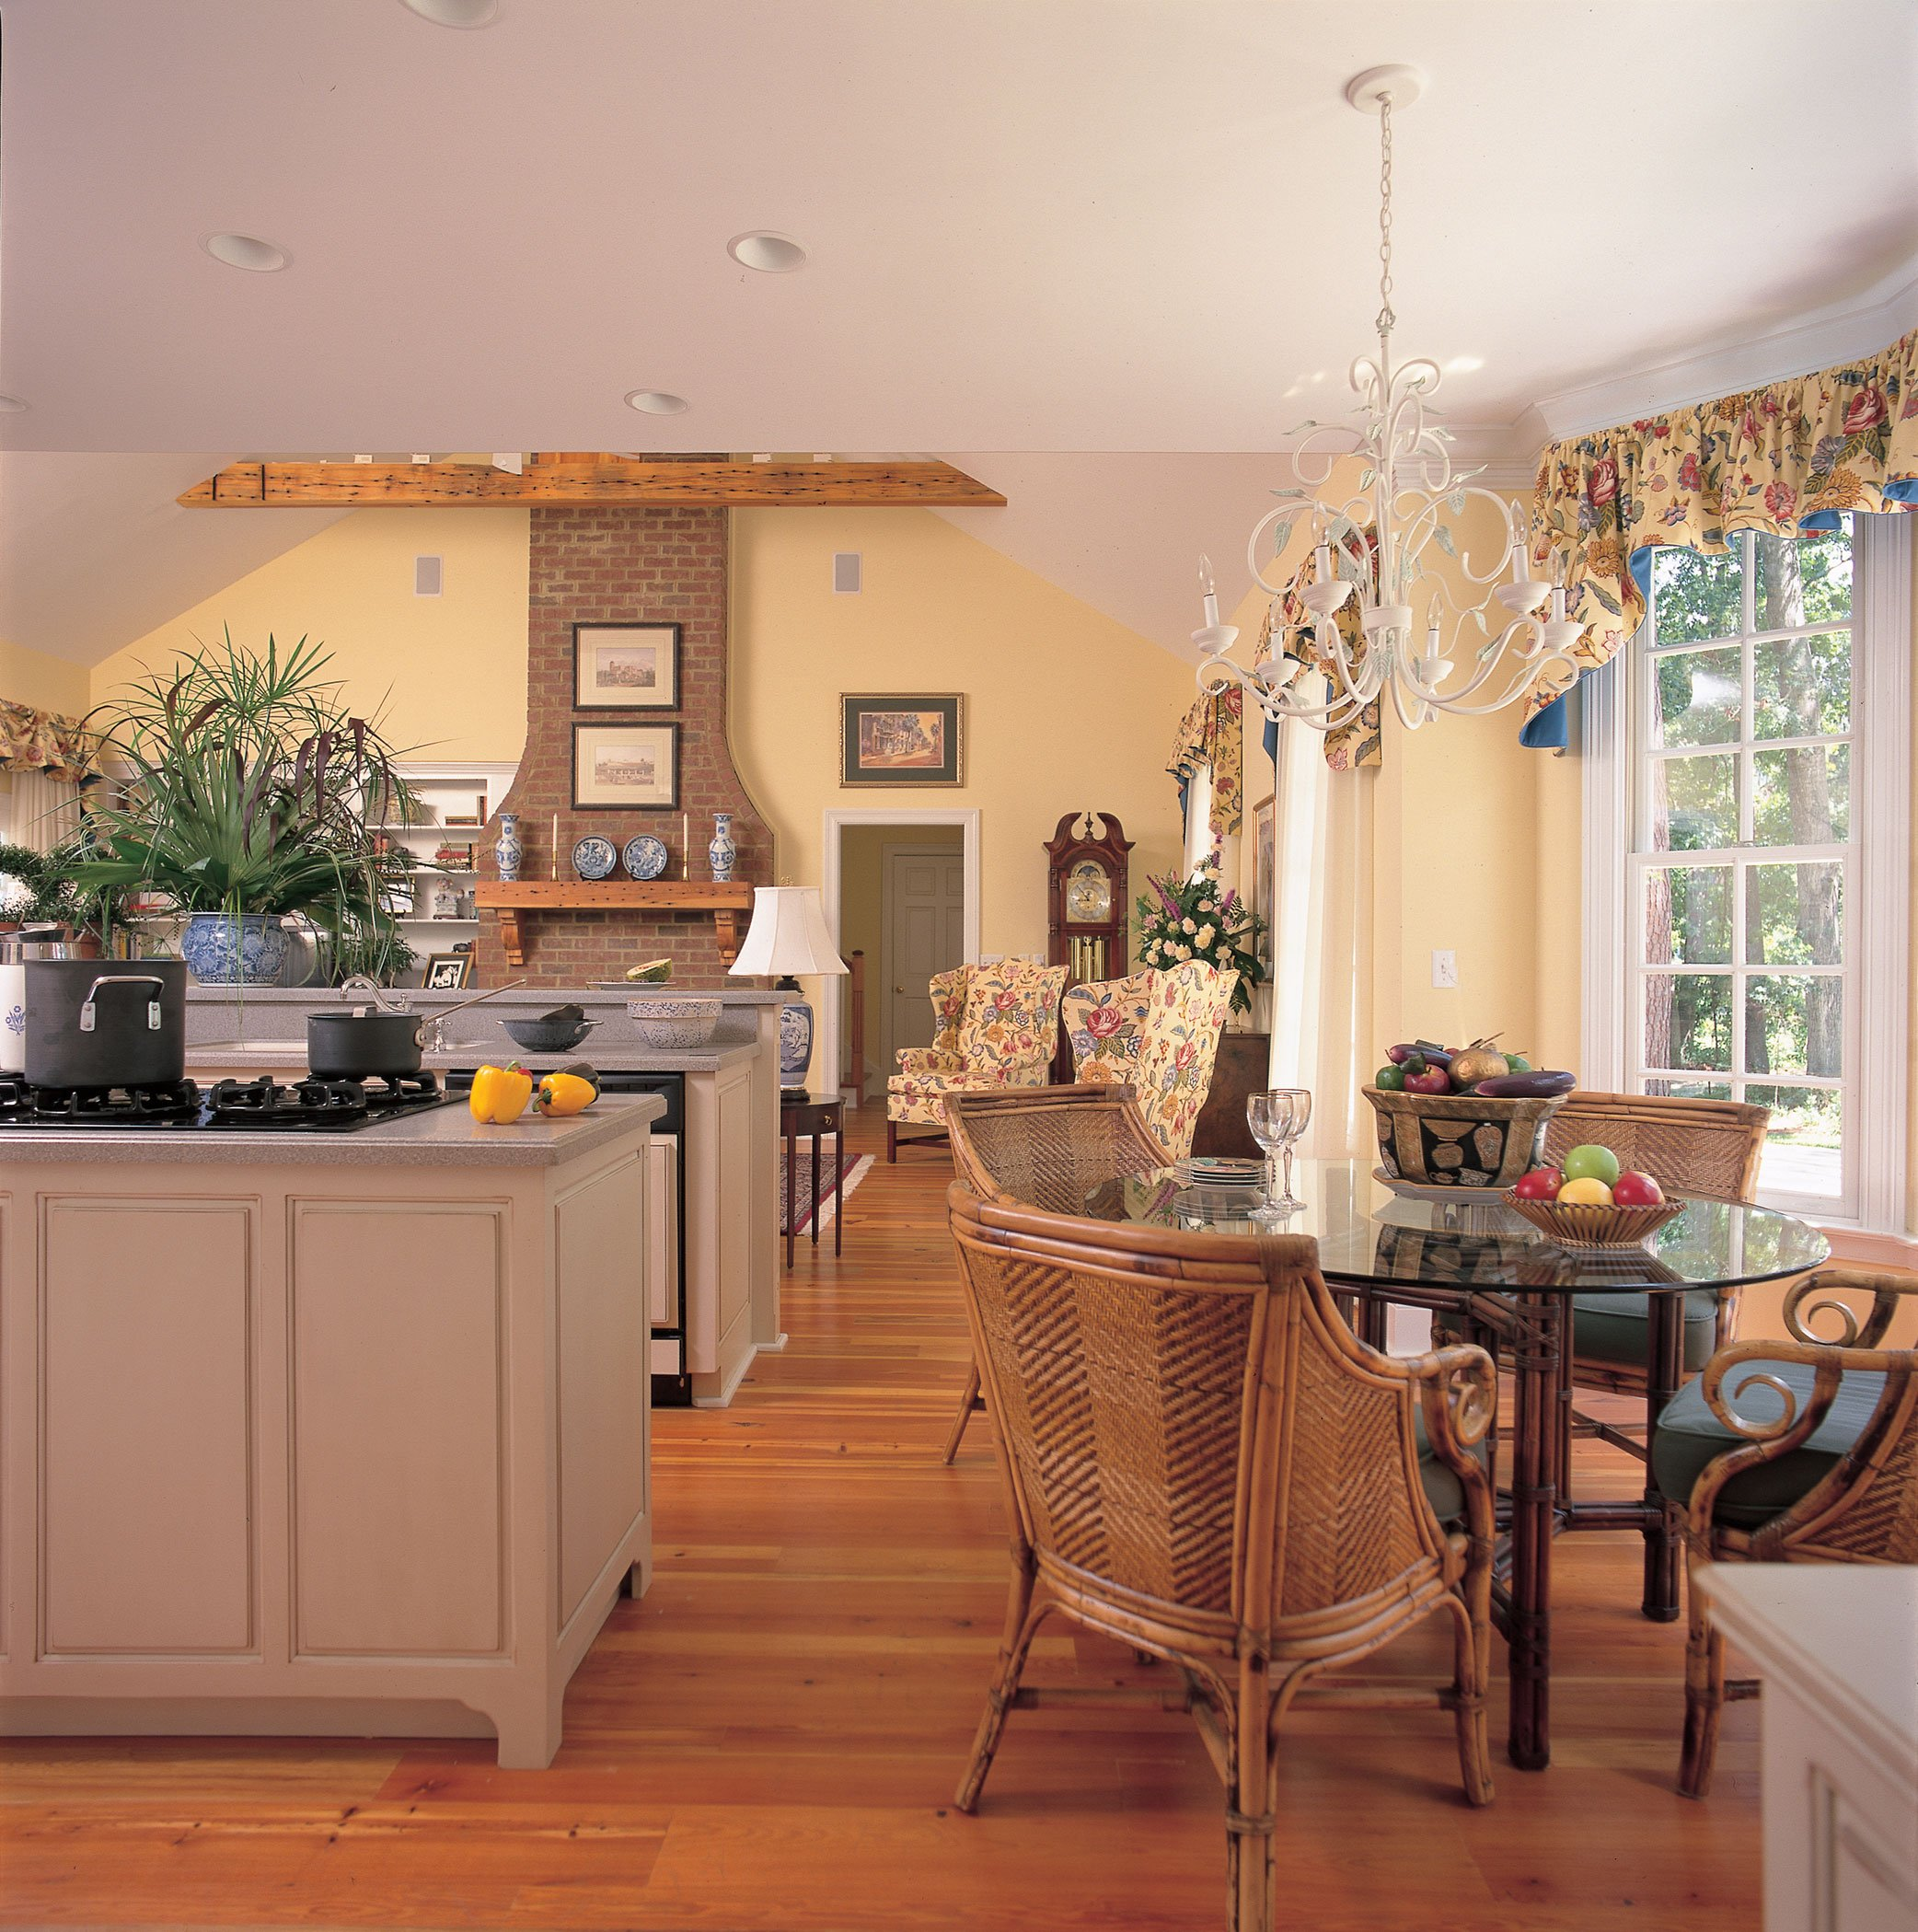 cape cod kitchen design. Cape Cod Country Open Kitchen Design Home  Old Key West House